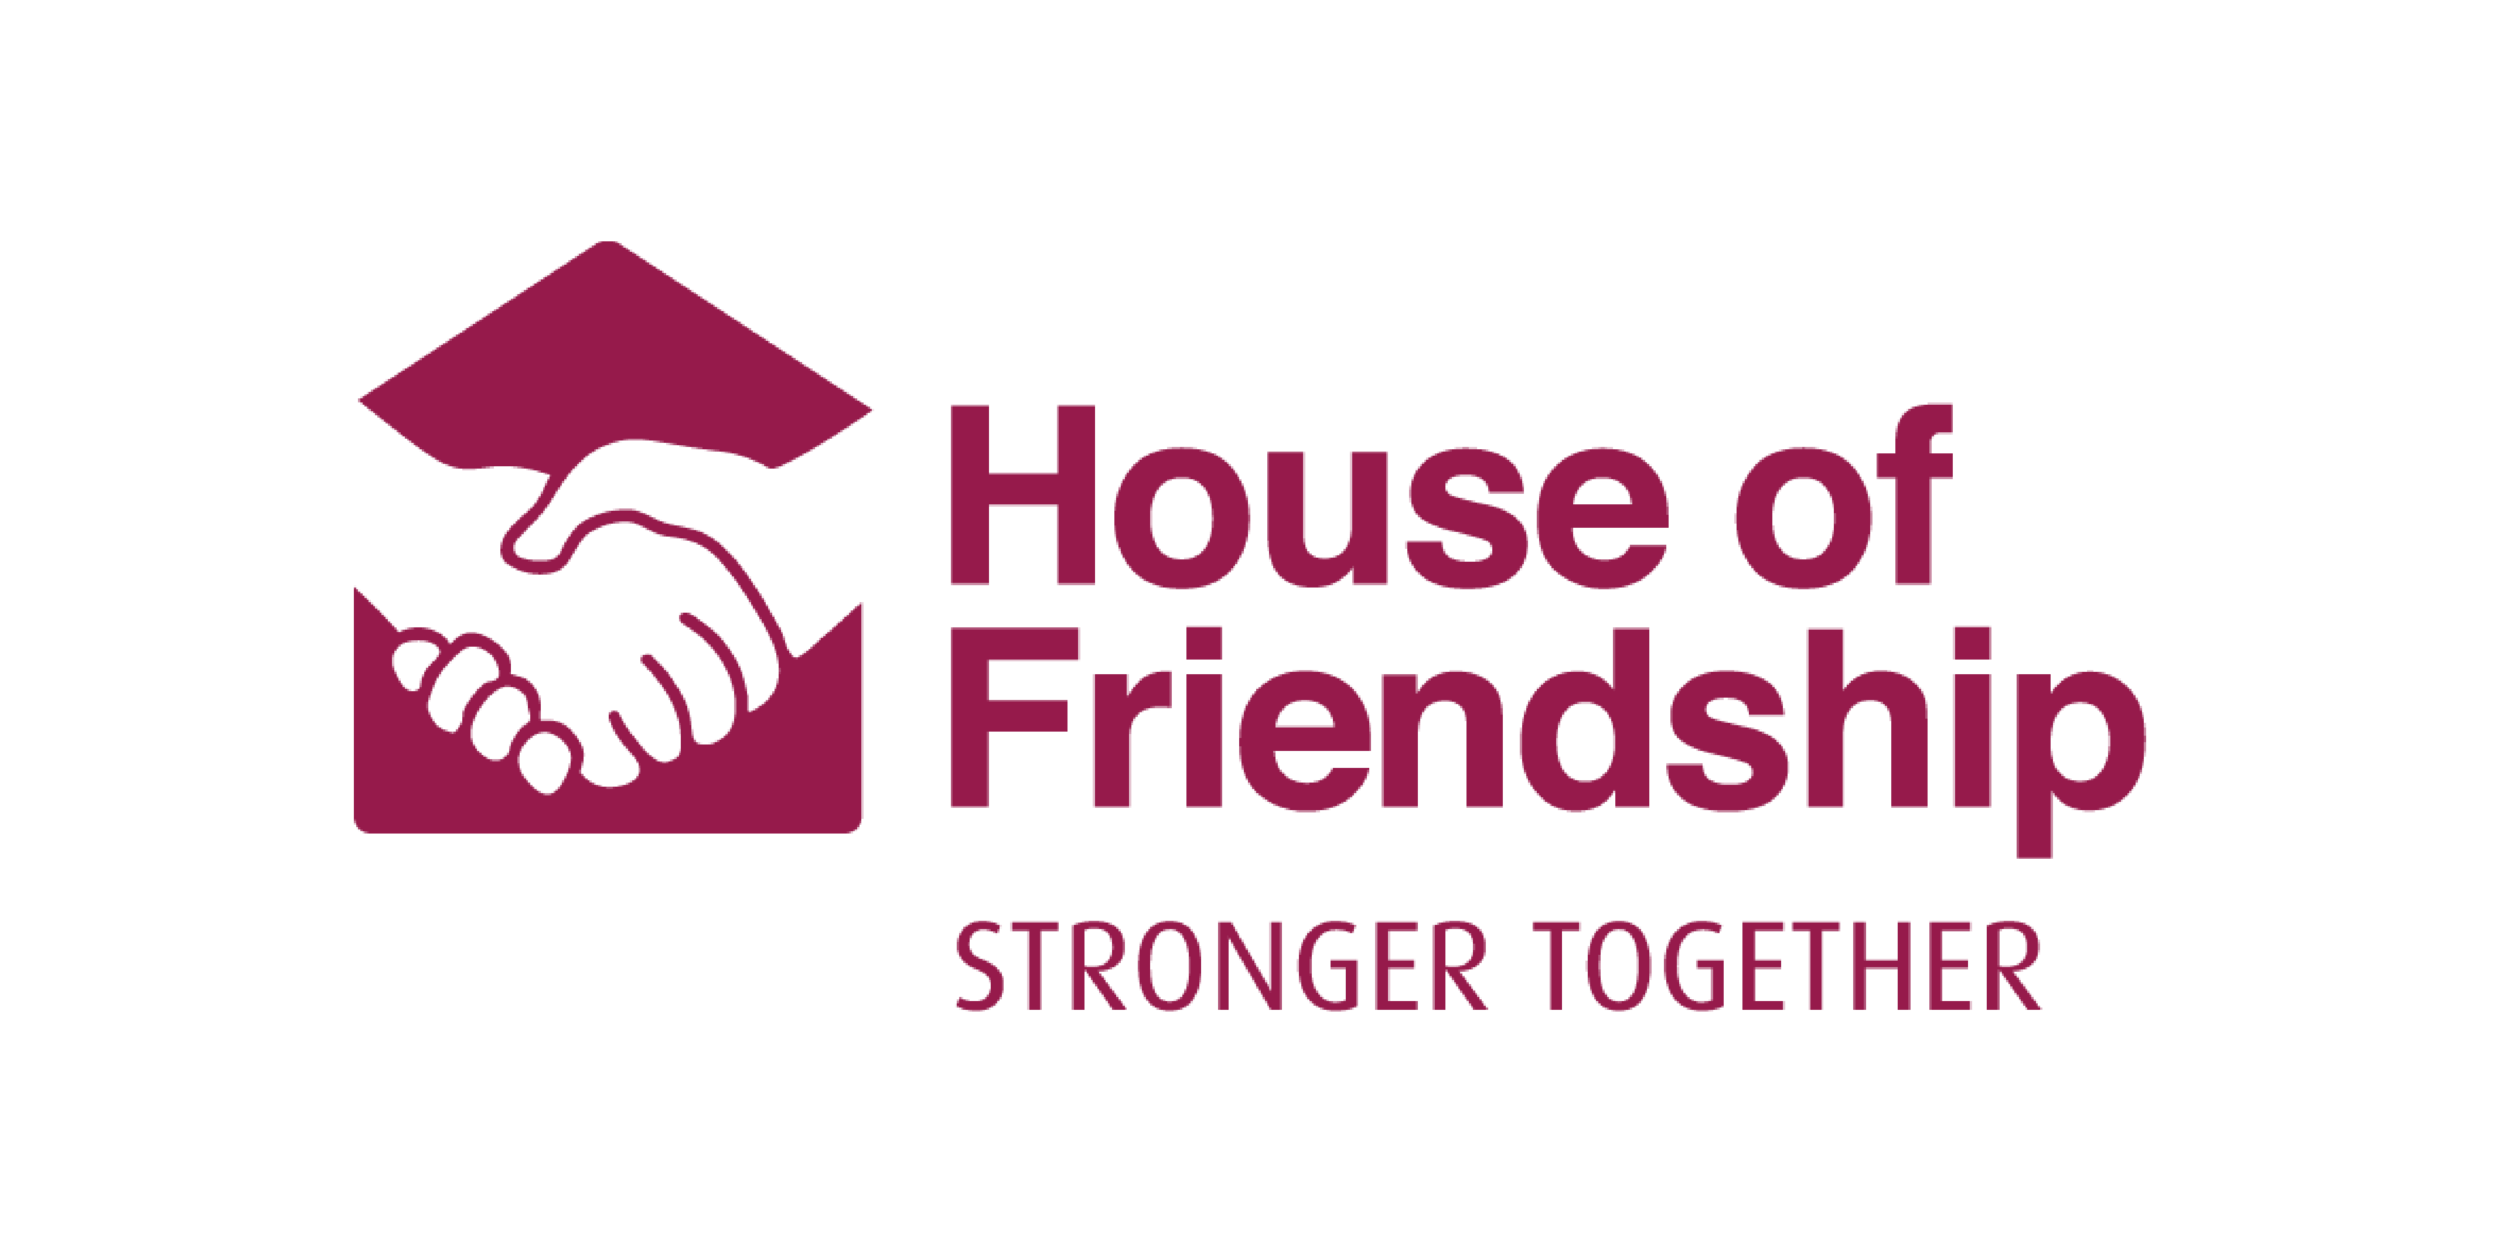 House of Friendship-logo-01-01.png